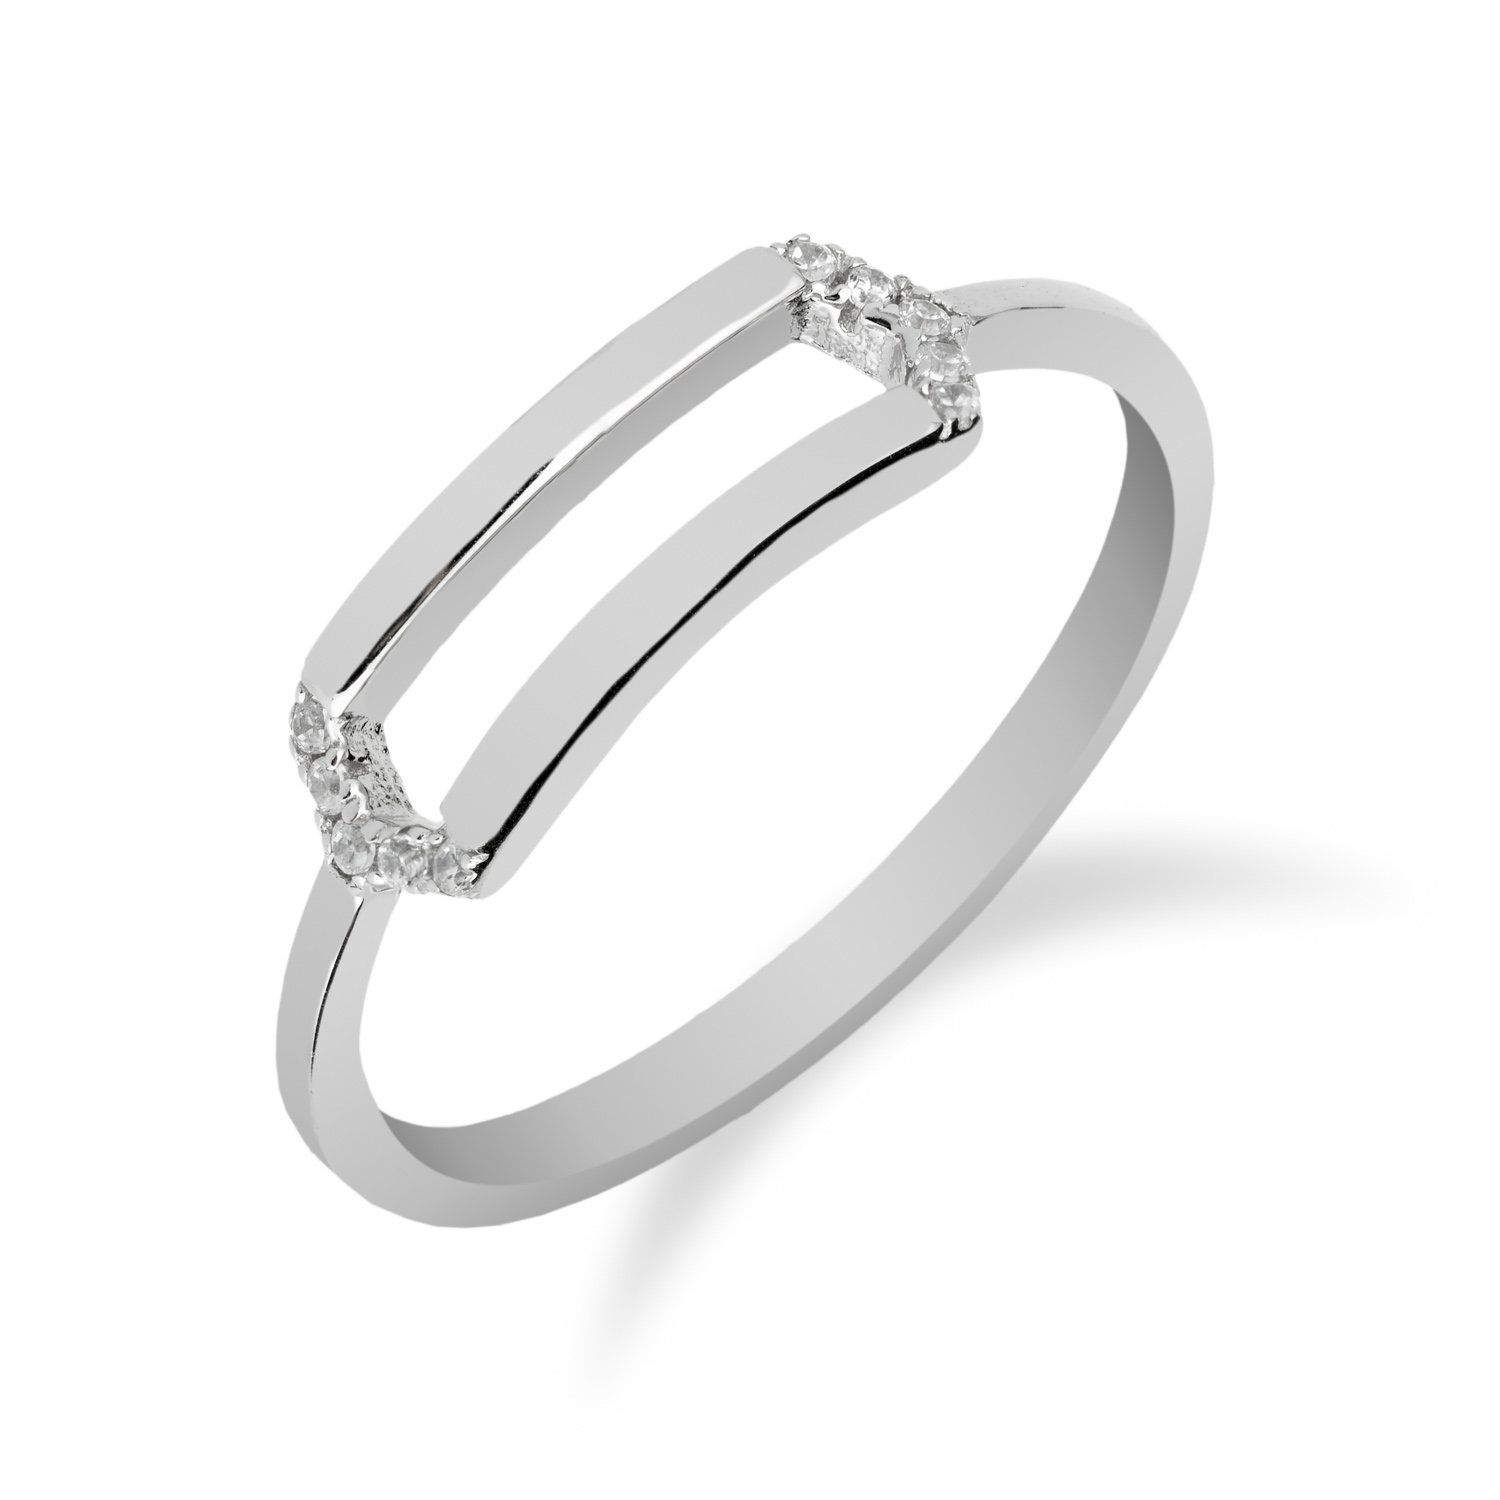 Rectangle Silhouette Ring In 925 Sterling Silver With Cubic Etsy In 2020 Beautiful Silver Rings Silver Rings Handmade 925 Silver Rings